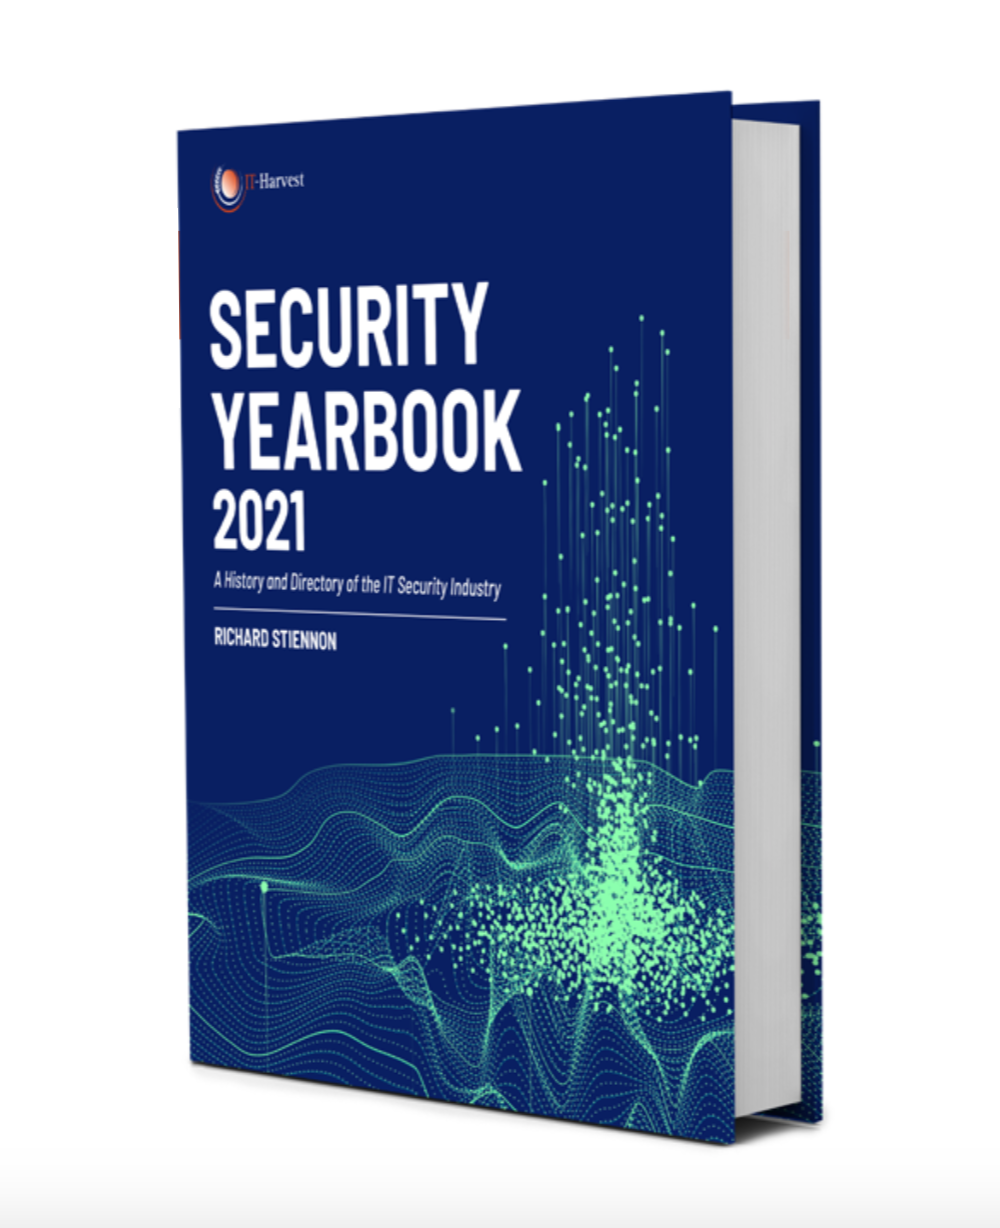 Book: Security Yearbook 2021